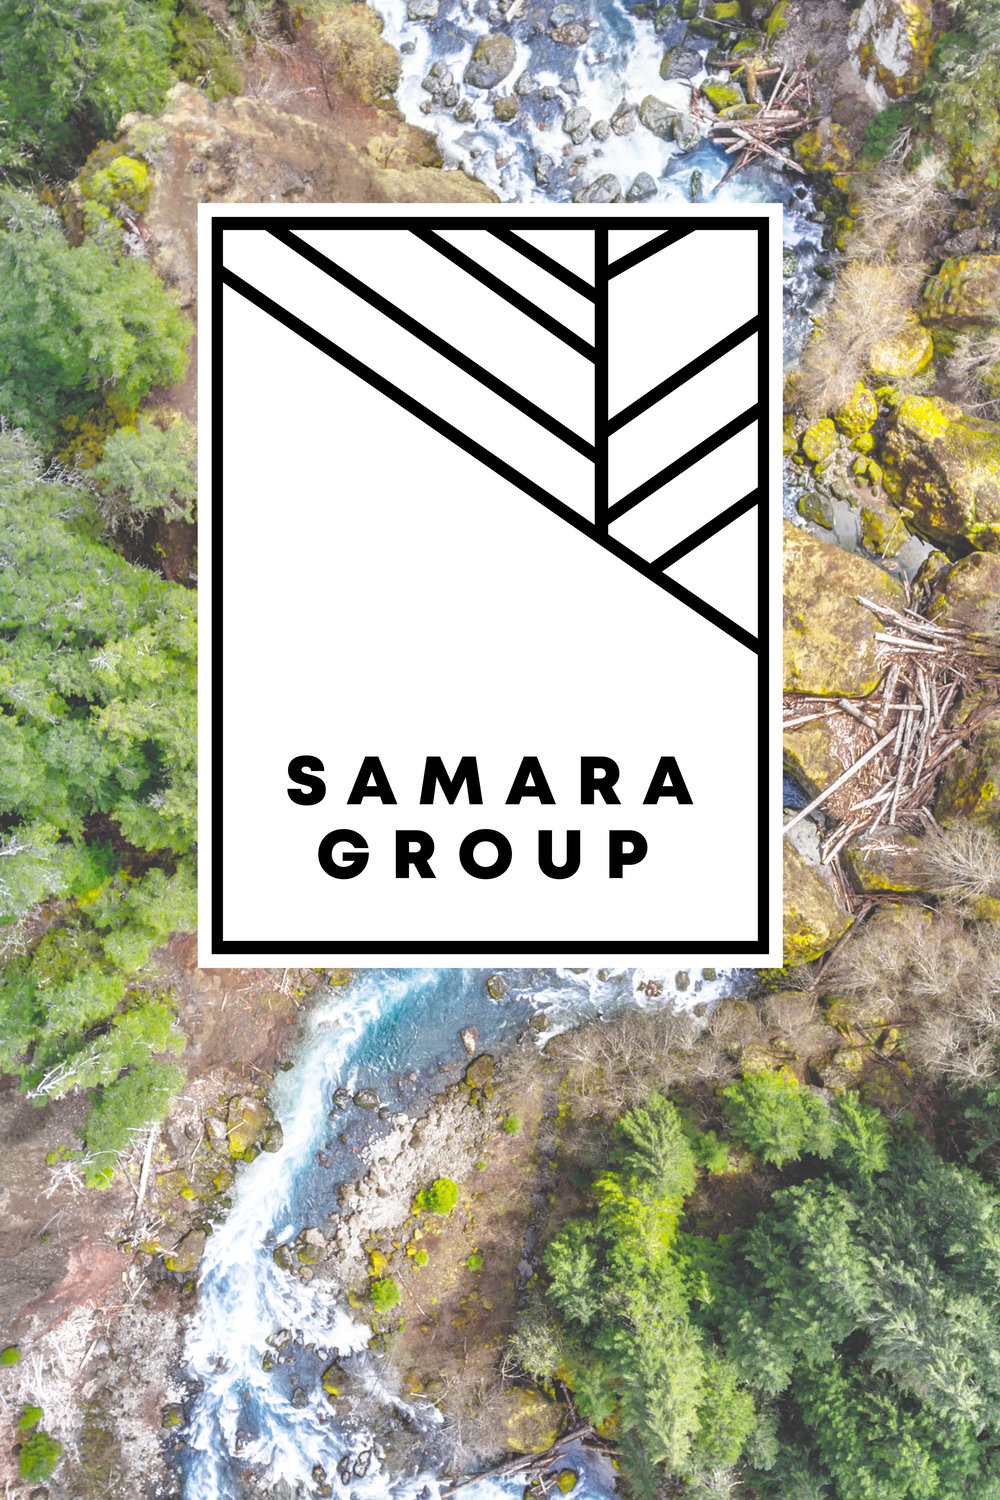 New logo and brand for Samara Group.